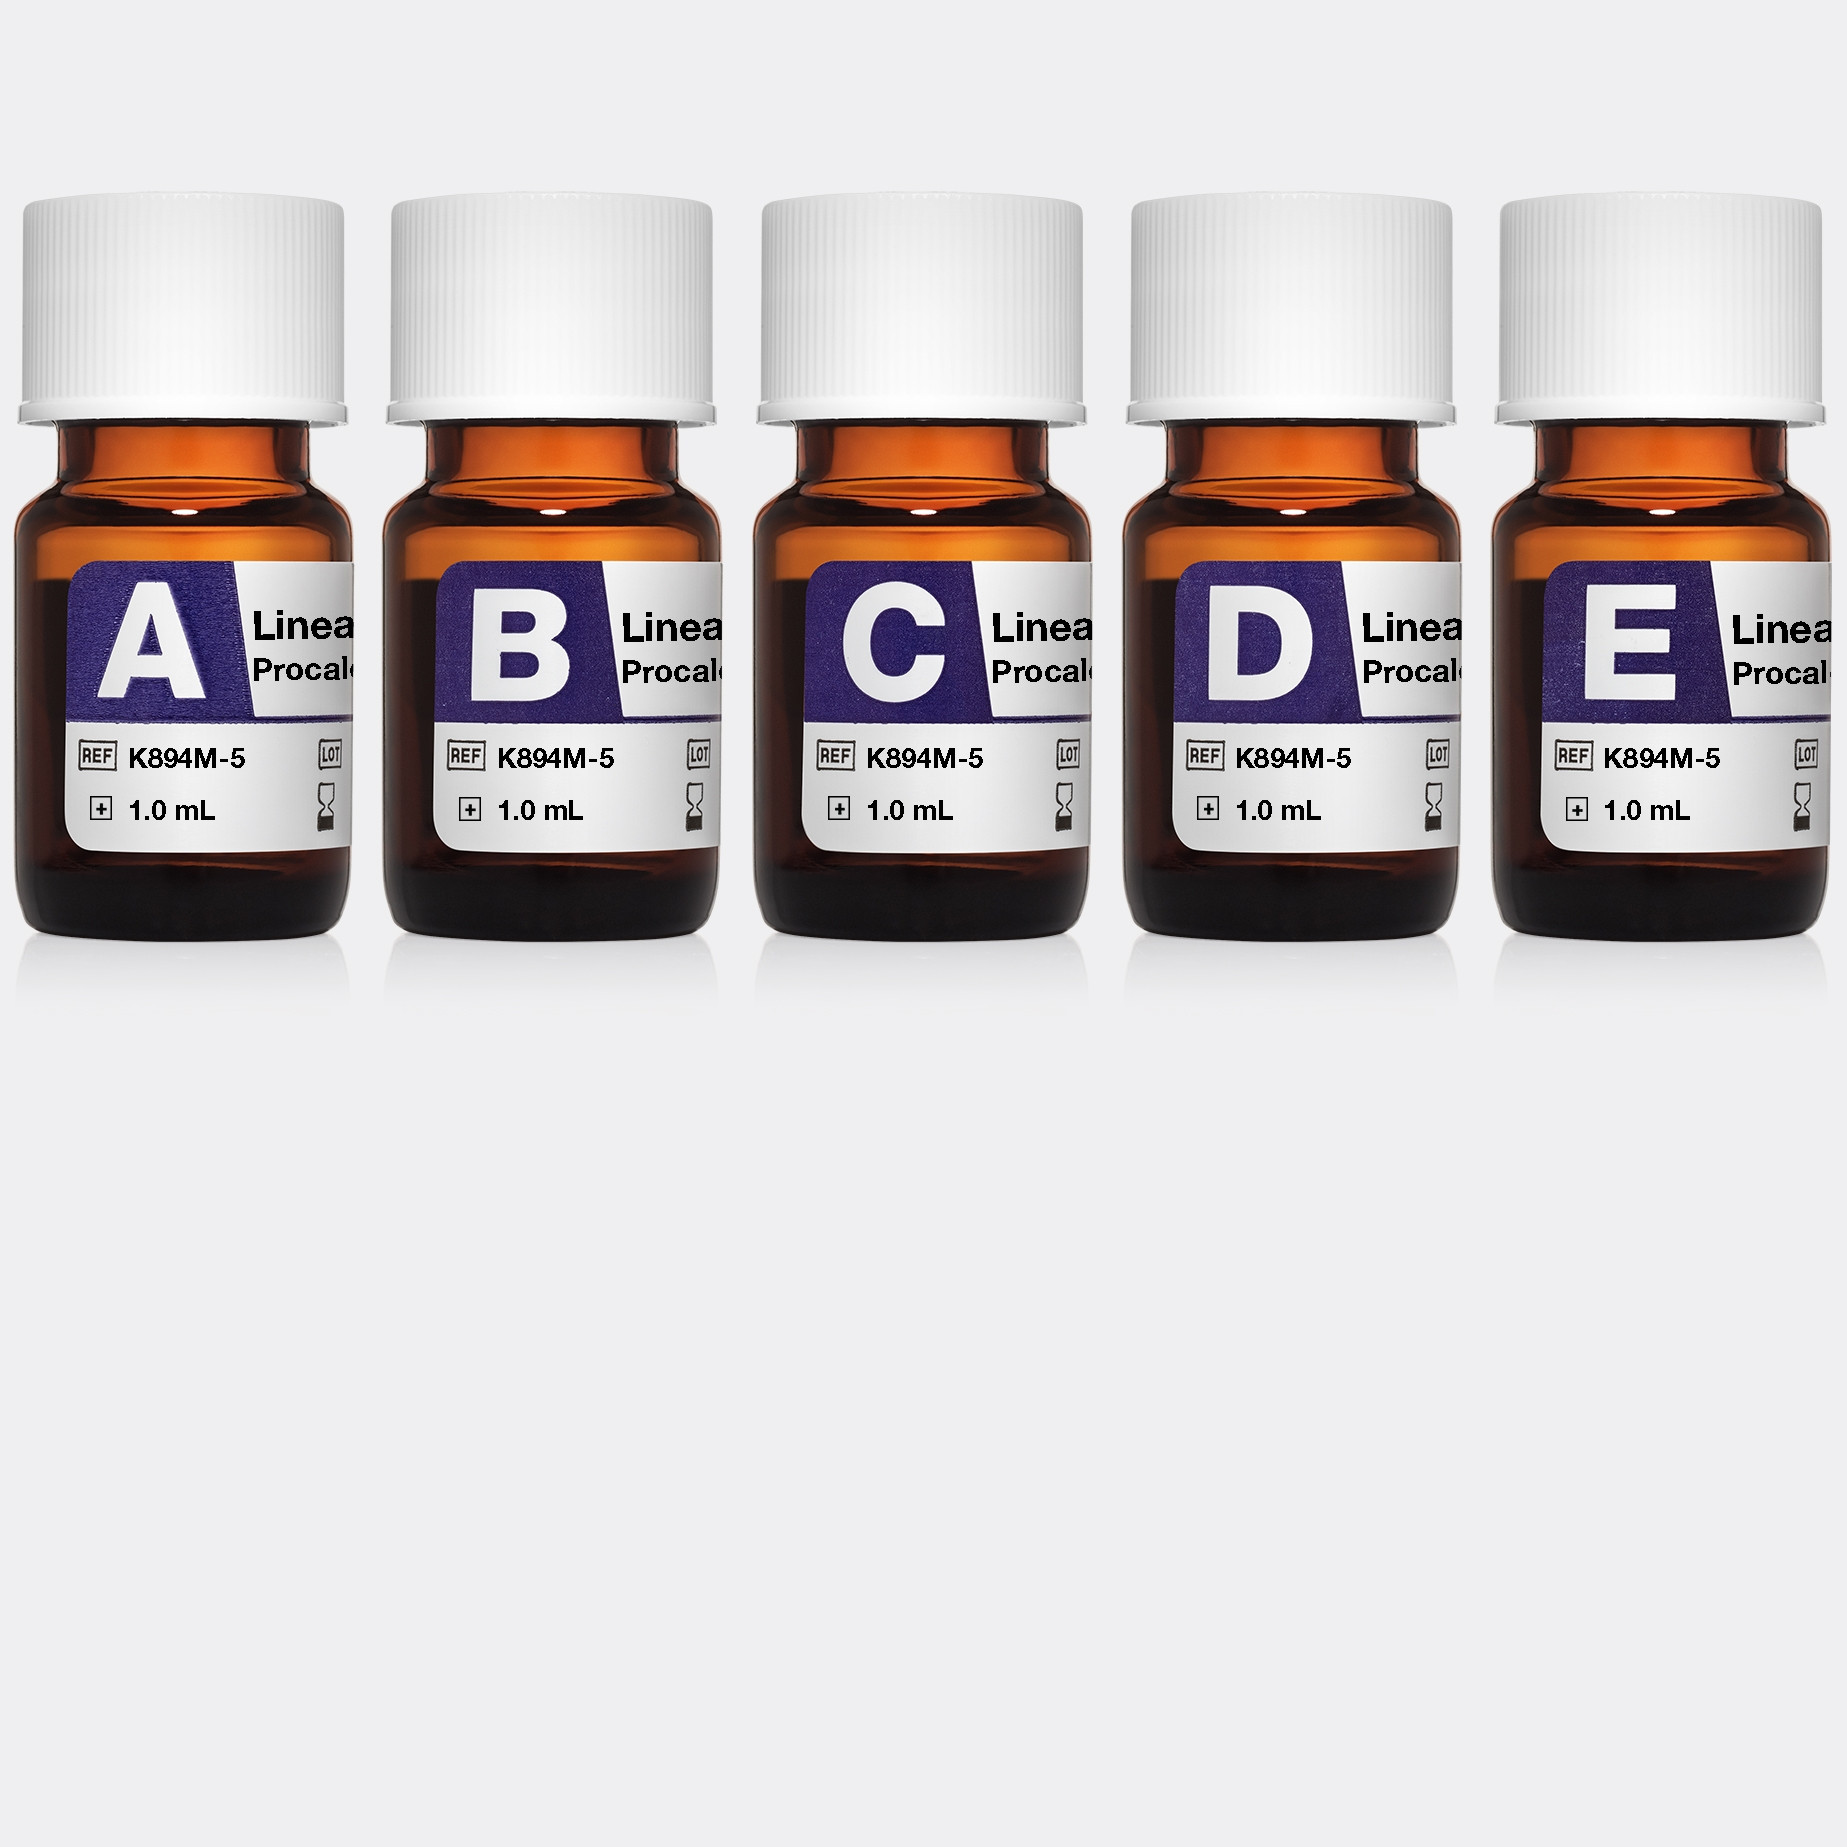 Linearity Fd Procalcitonin For Roche Systems Calibration